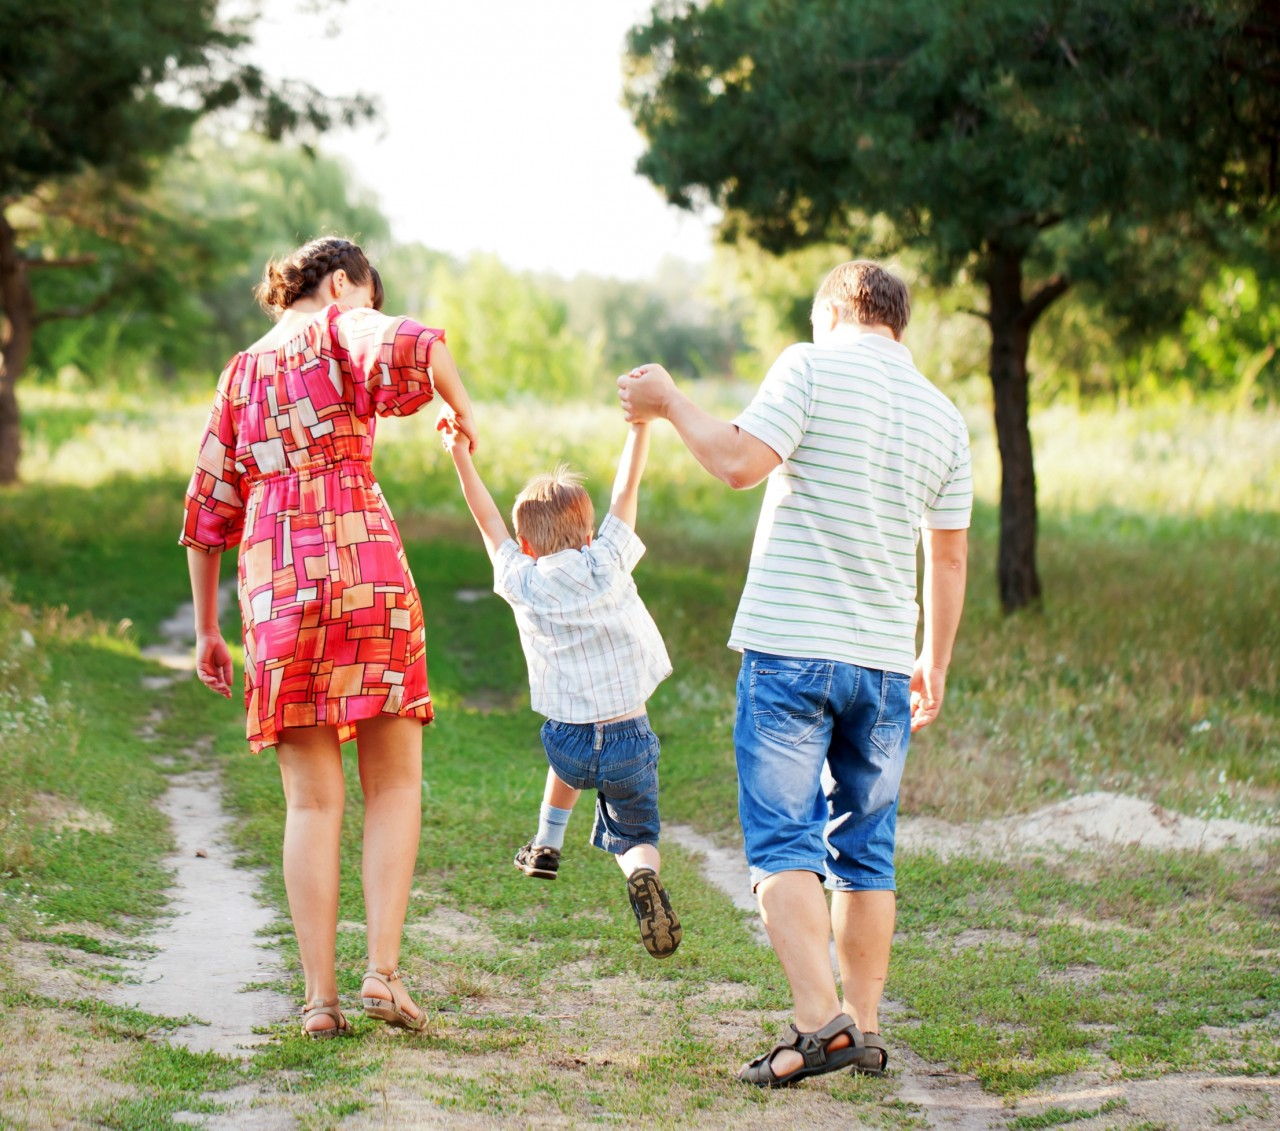 How to Get Organized & Enjoy More Time with Your Family